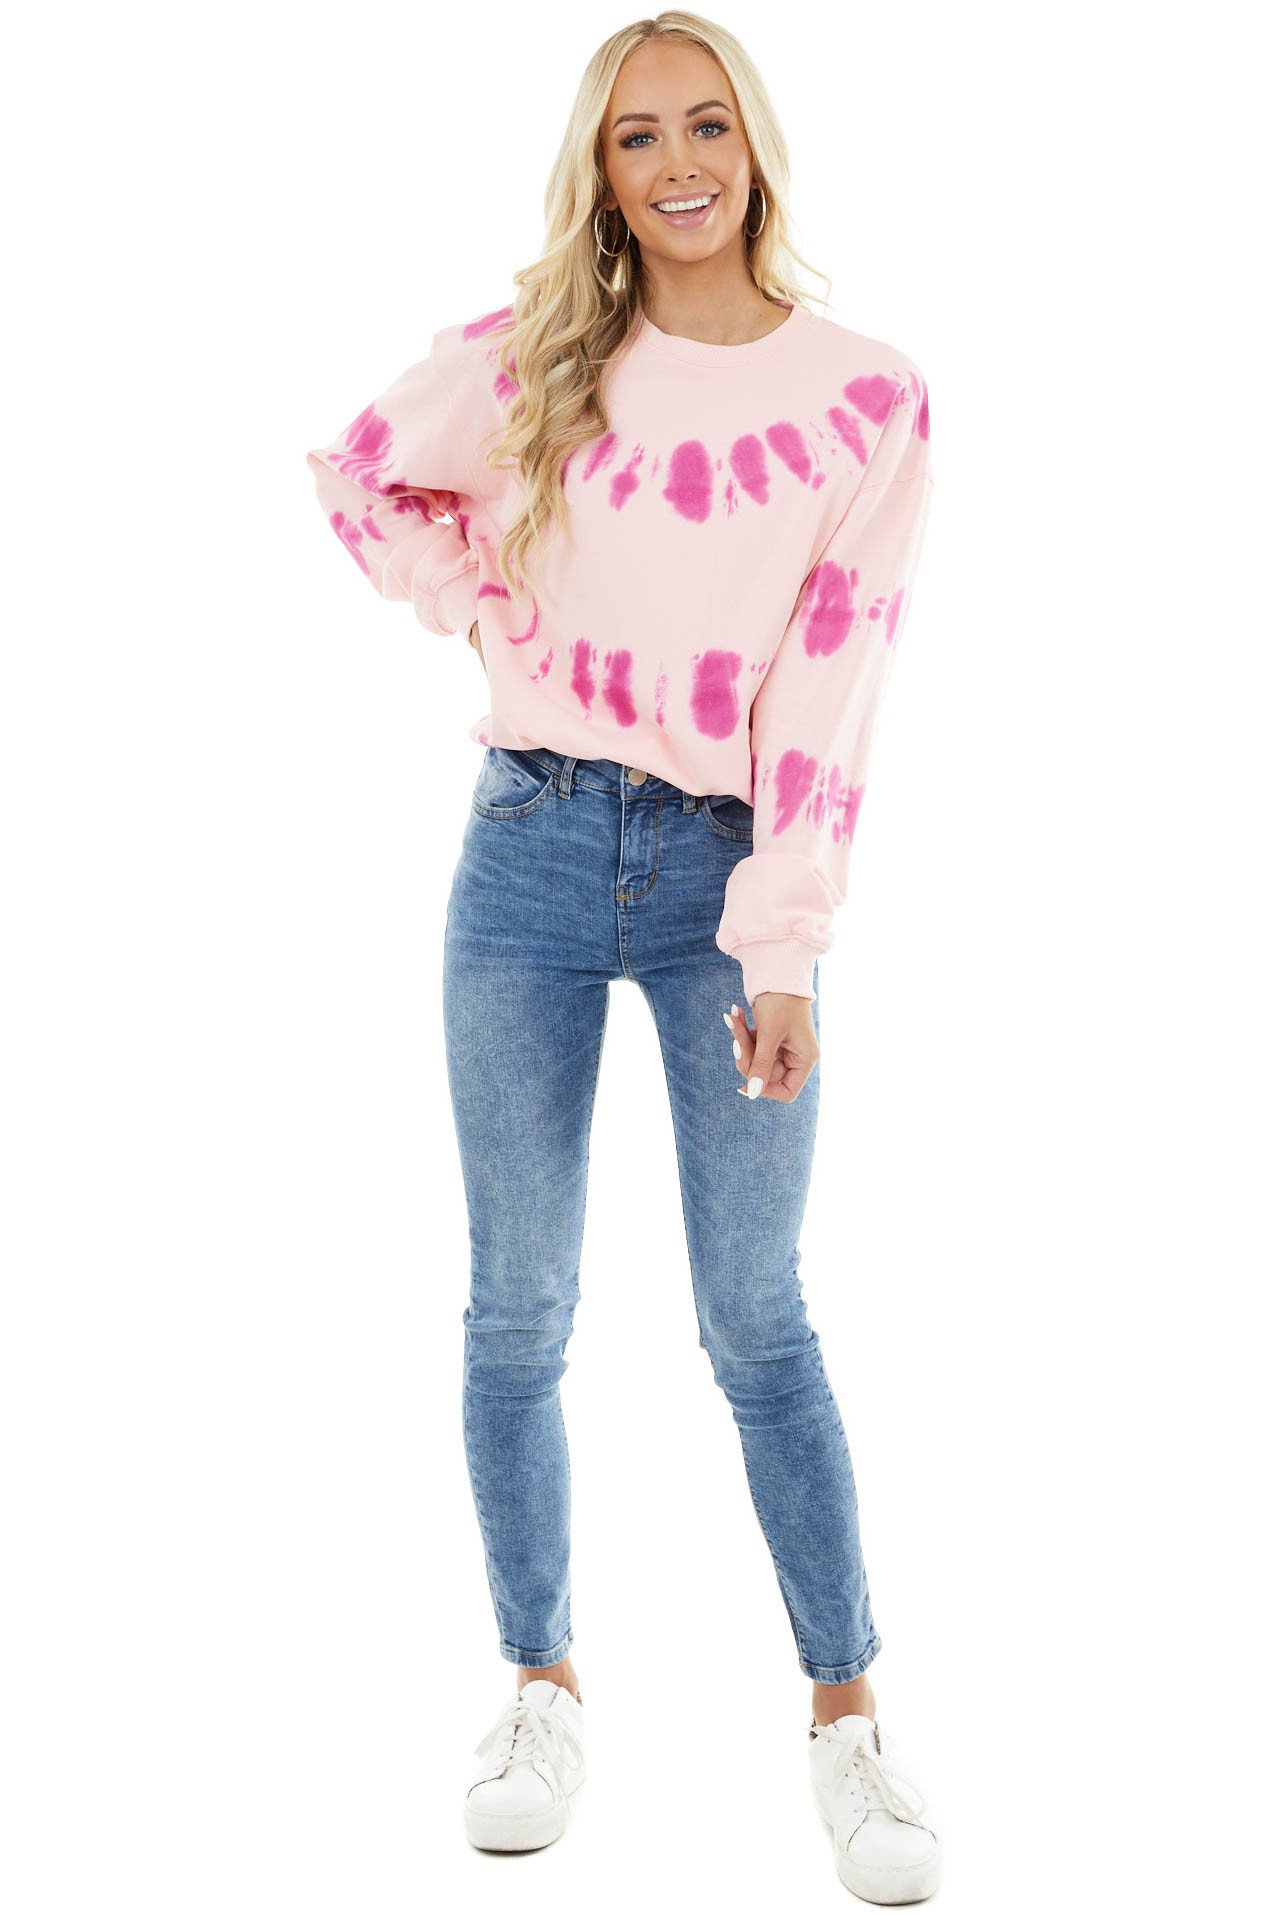 Baby Pink and Fuchsia Tie Dye Sweatshirt with Ribbed Detail